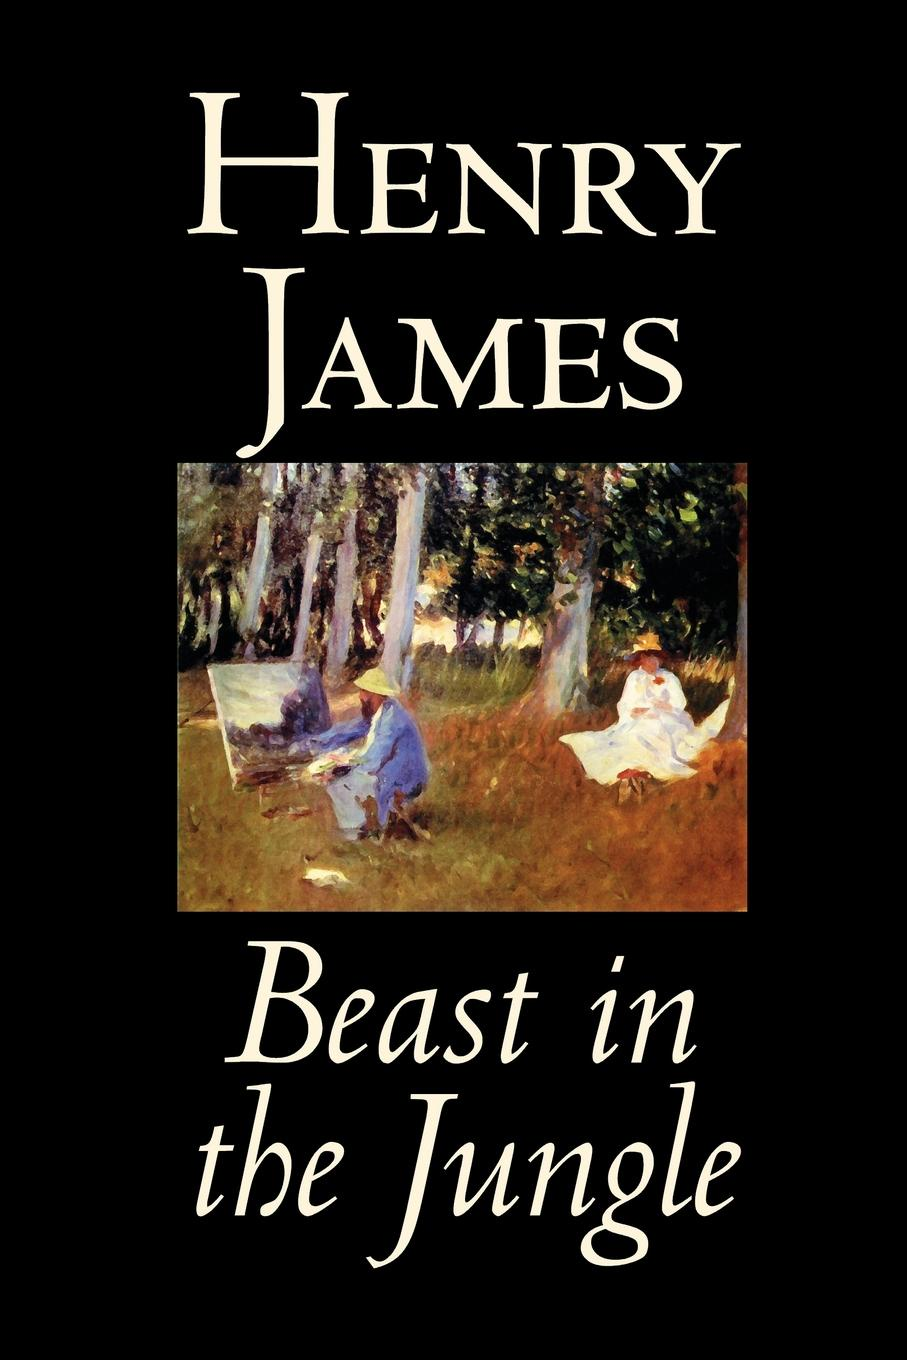 Henry James Beast in the Jungle by Henry James, Fiction, Classics, Literary, Alternative History, Short Stories henry james the ivory tower by henry james fiction classics literary